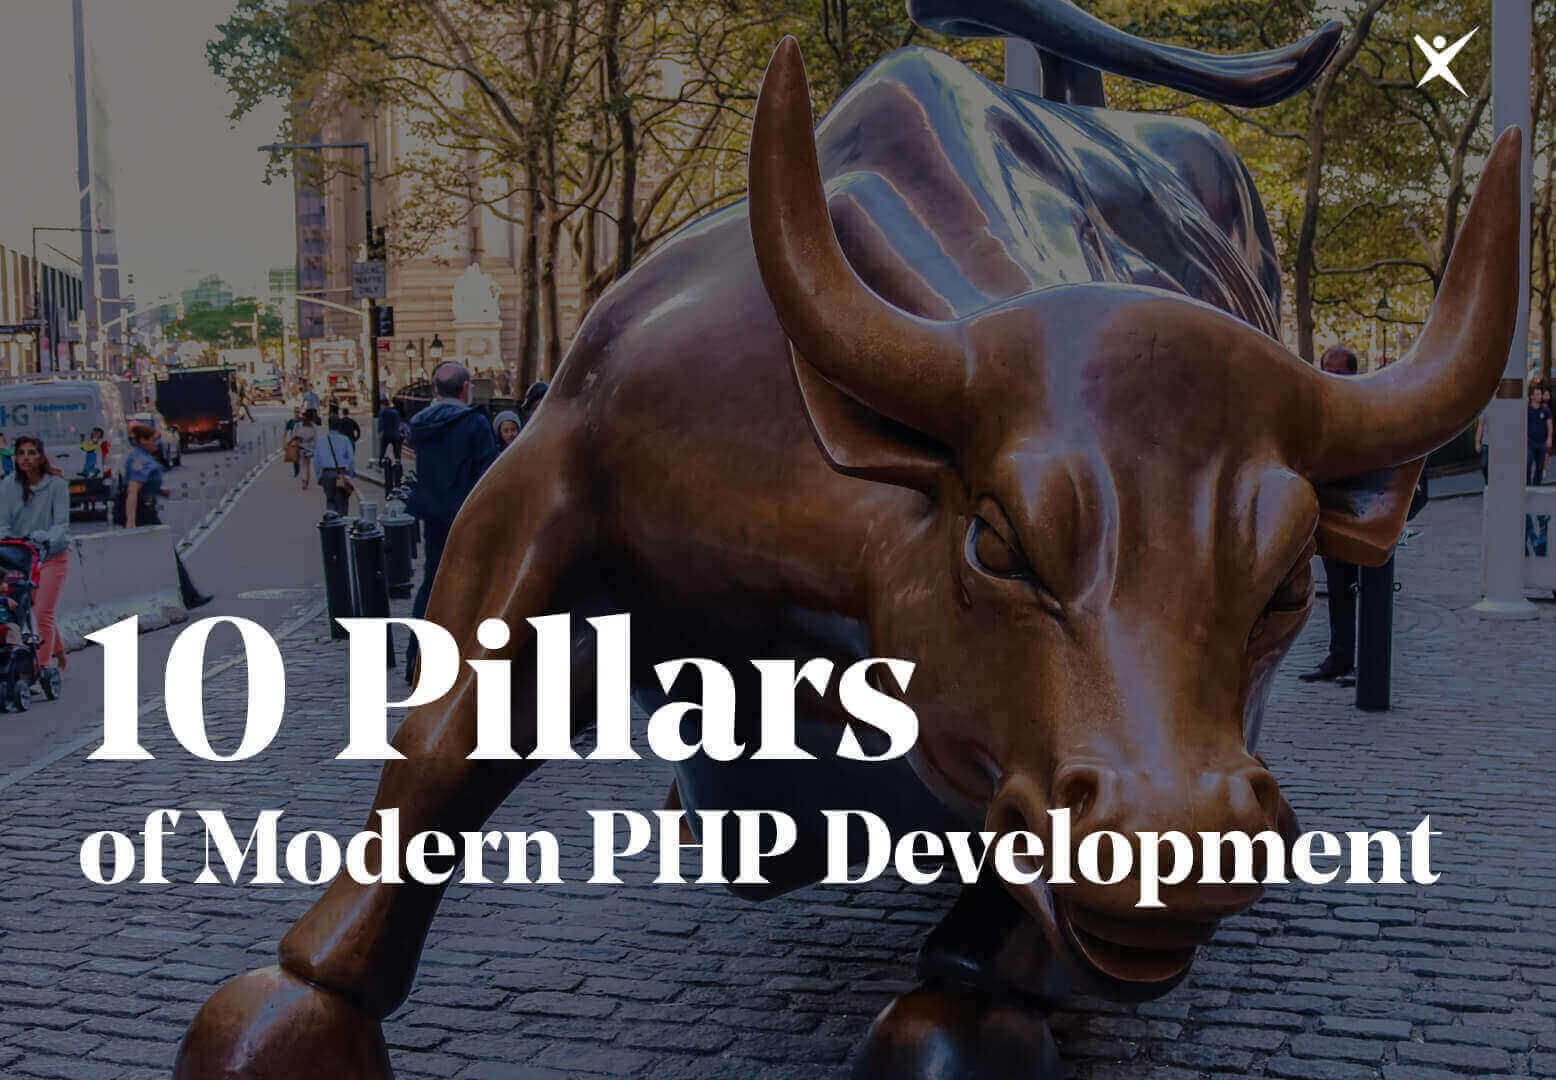 10 Pillars of Modern PHP Development